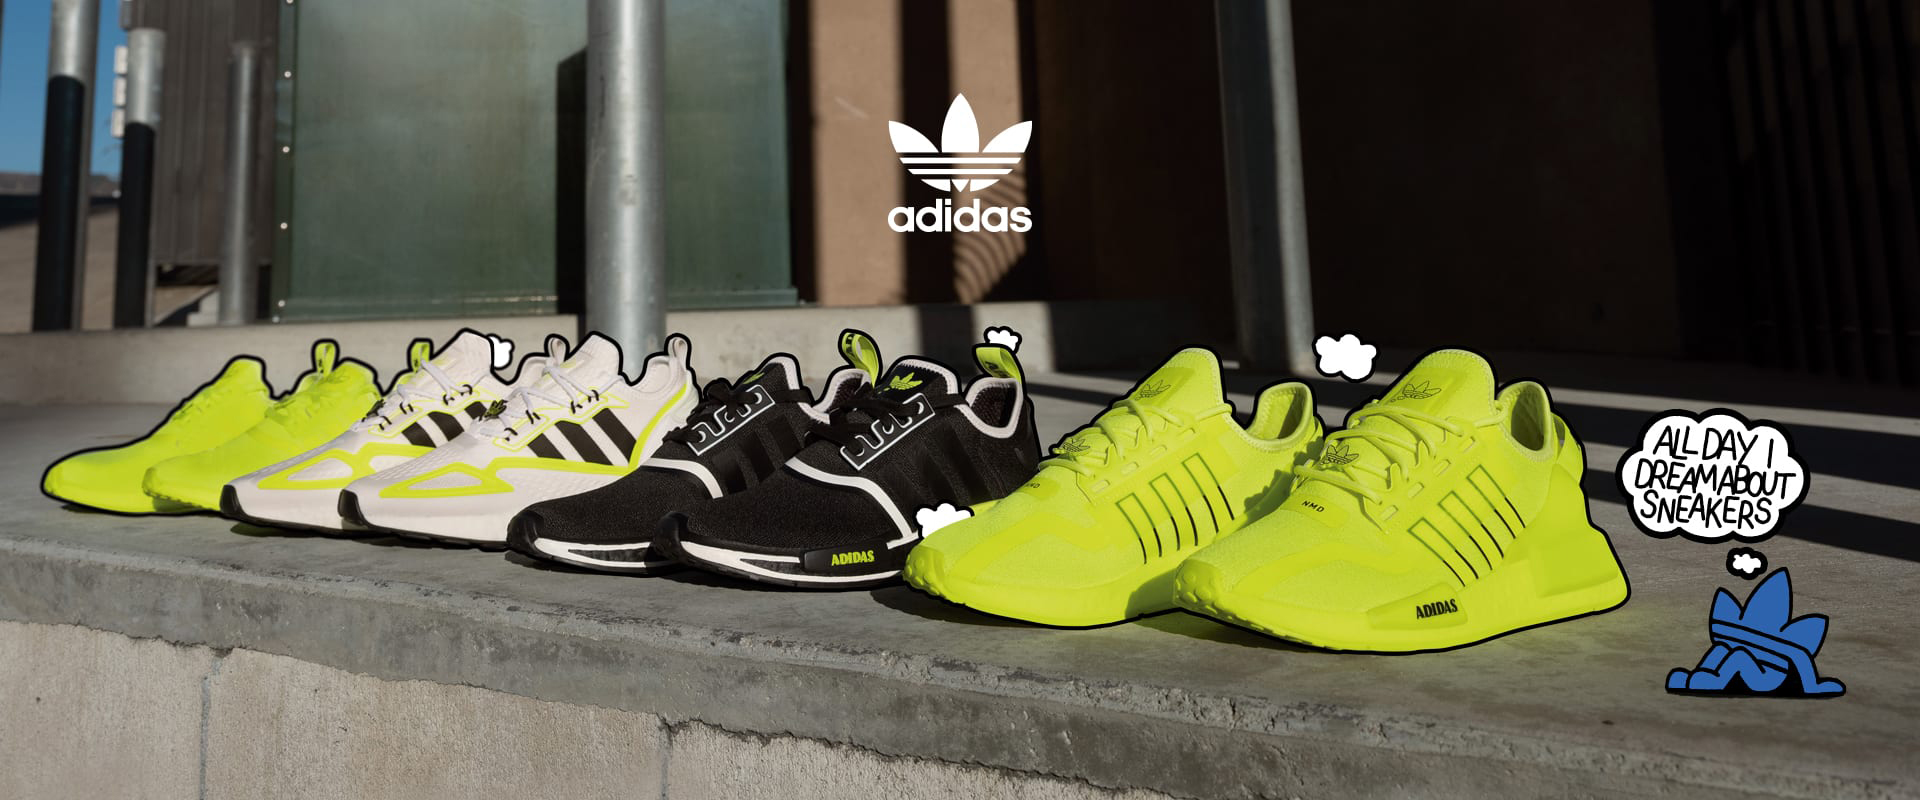 adidas-nmd-all-day-i-dream-about-sneakers-pack